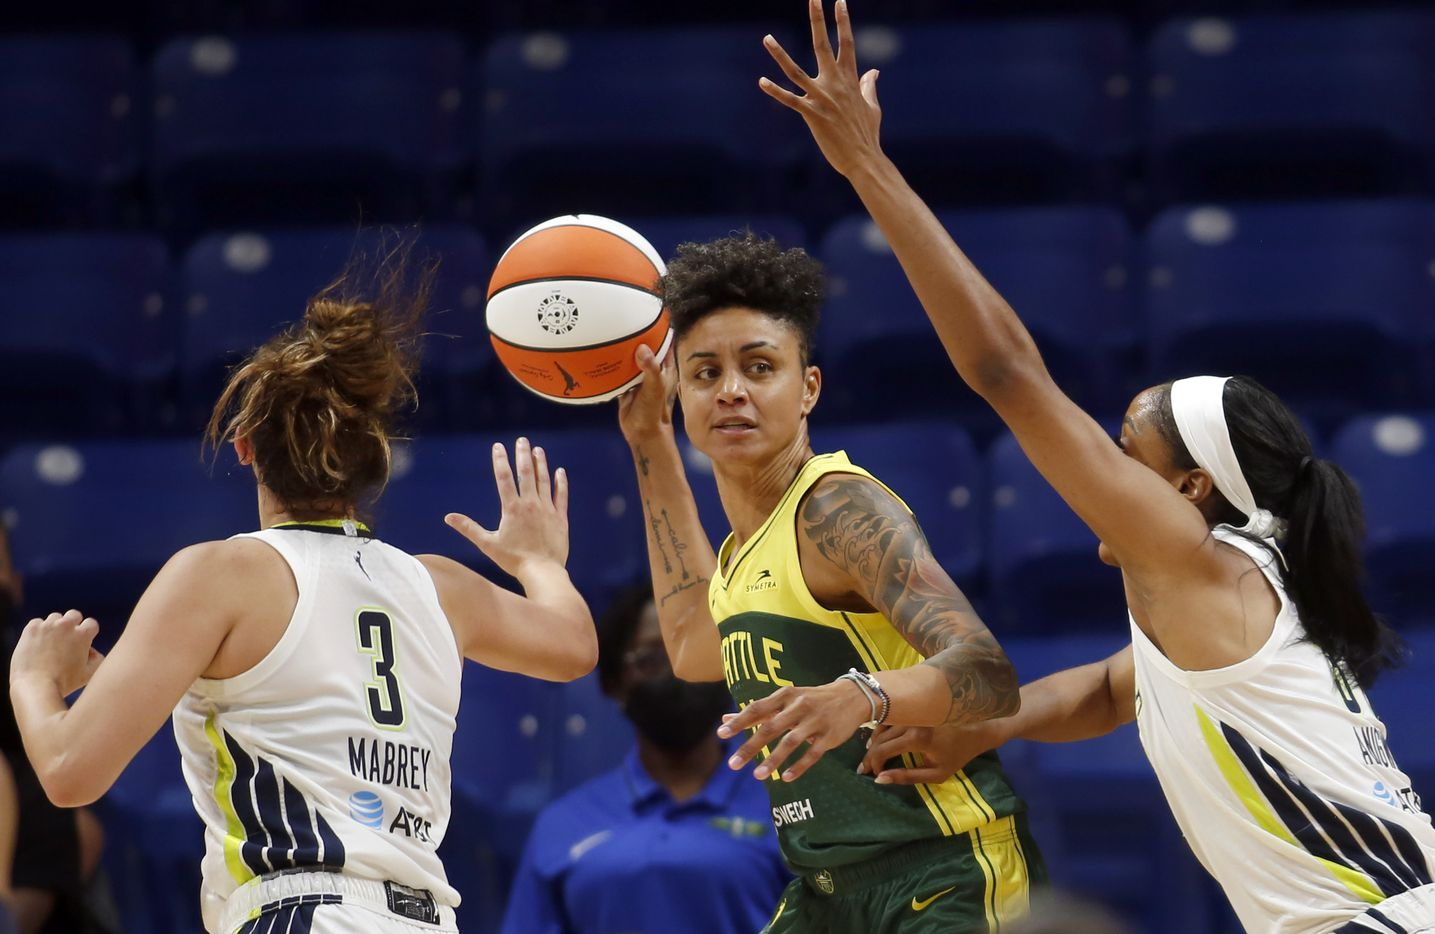 Seattle forward Candice Dupree (4) looks to pass as she faces the defense of Wings guard Marina Mabry (3), left, and center Kristine Anigwe (31) during second half action. The Wings hosted the Storm for their WNBA 2021season home opener at UTA's College Park Center in Arlington on May 22, 2021. (Steve Hamm/ Special Contributor)